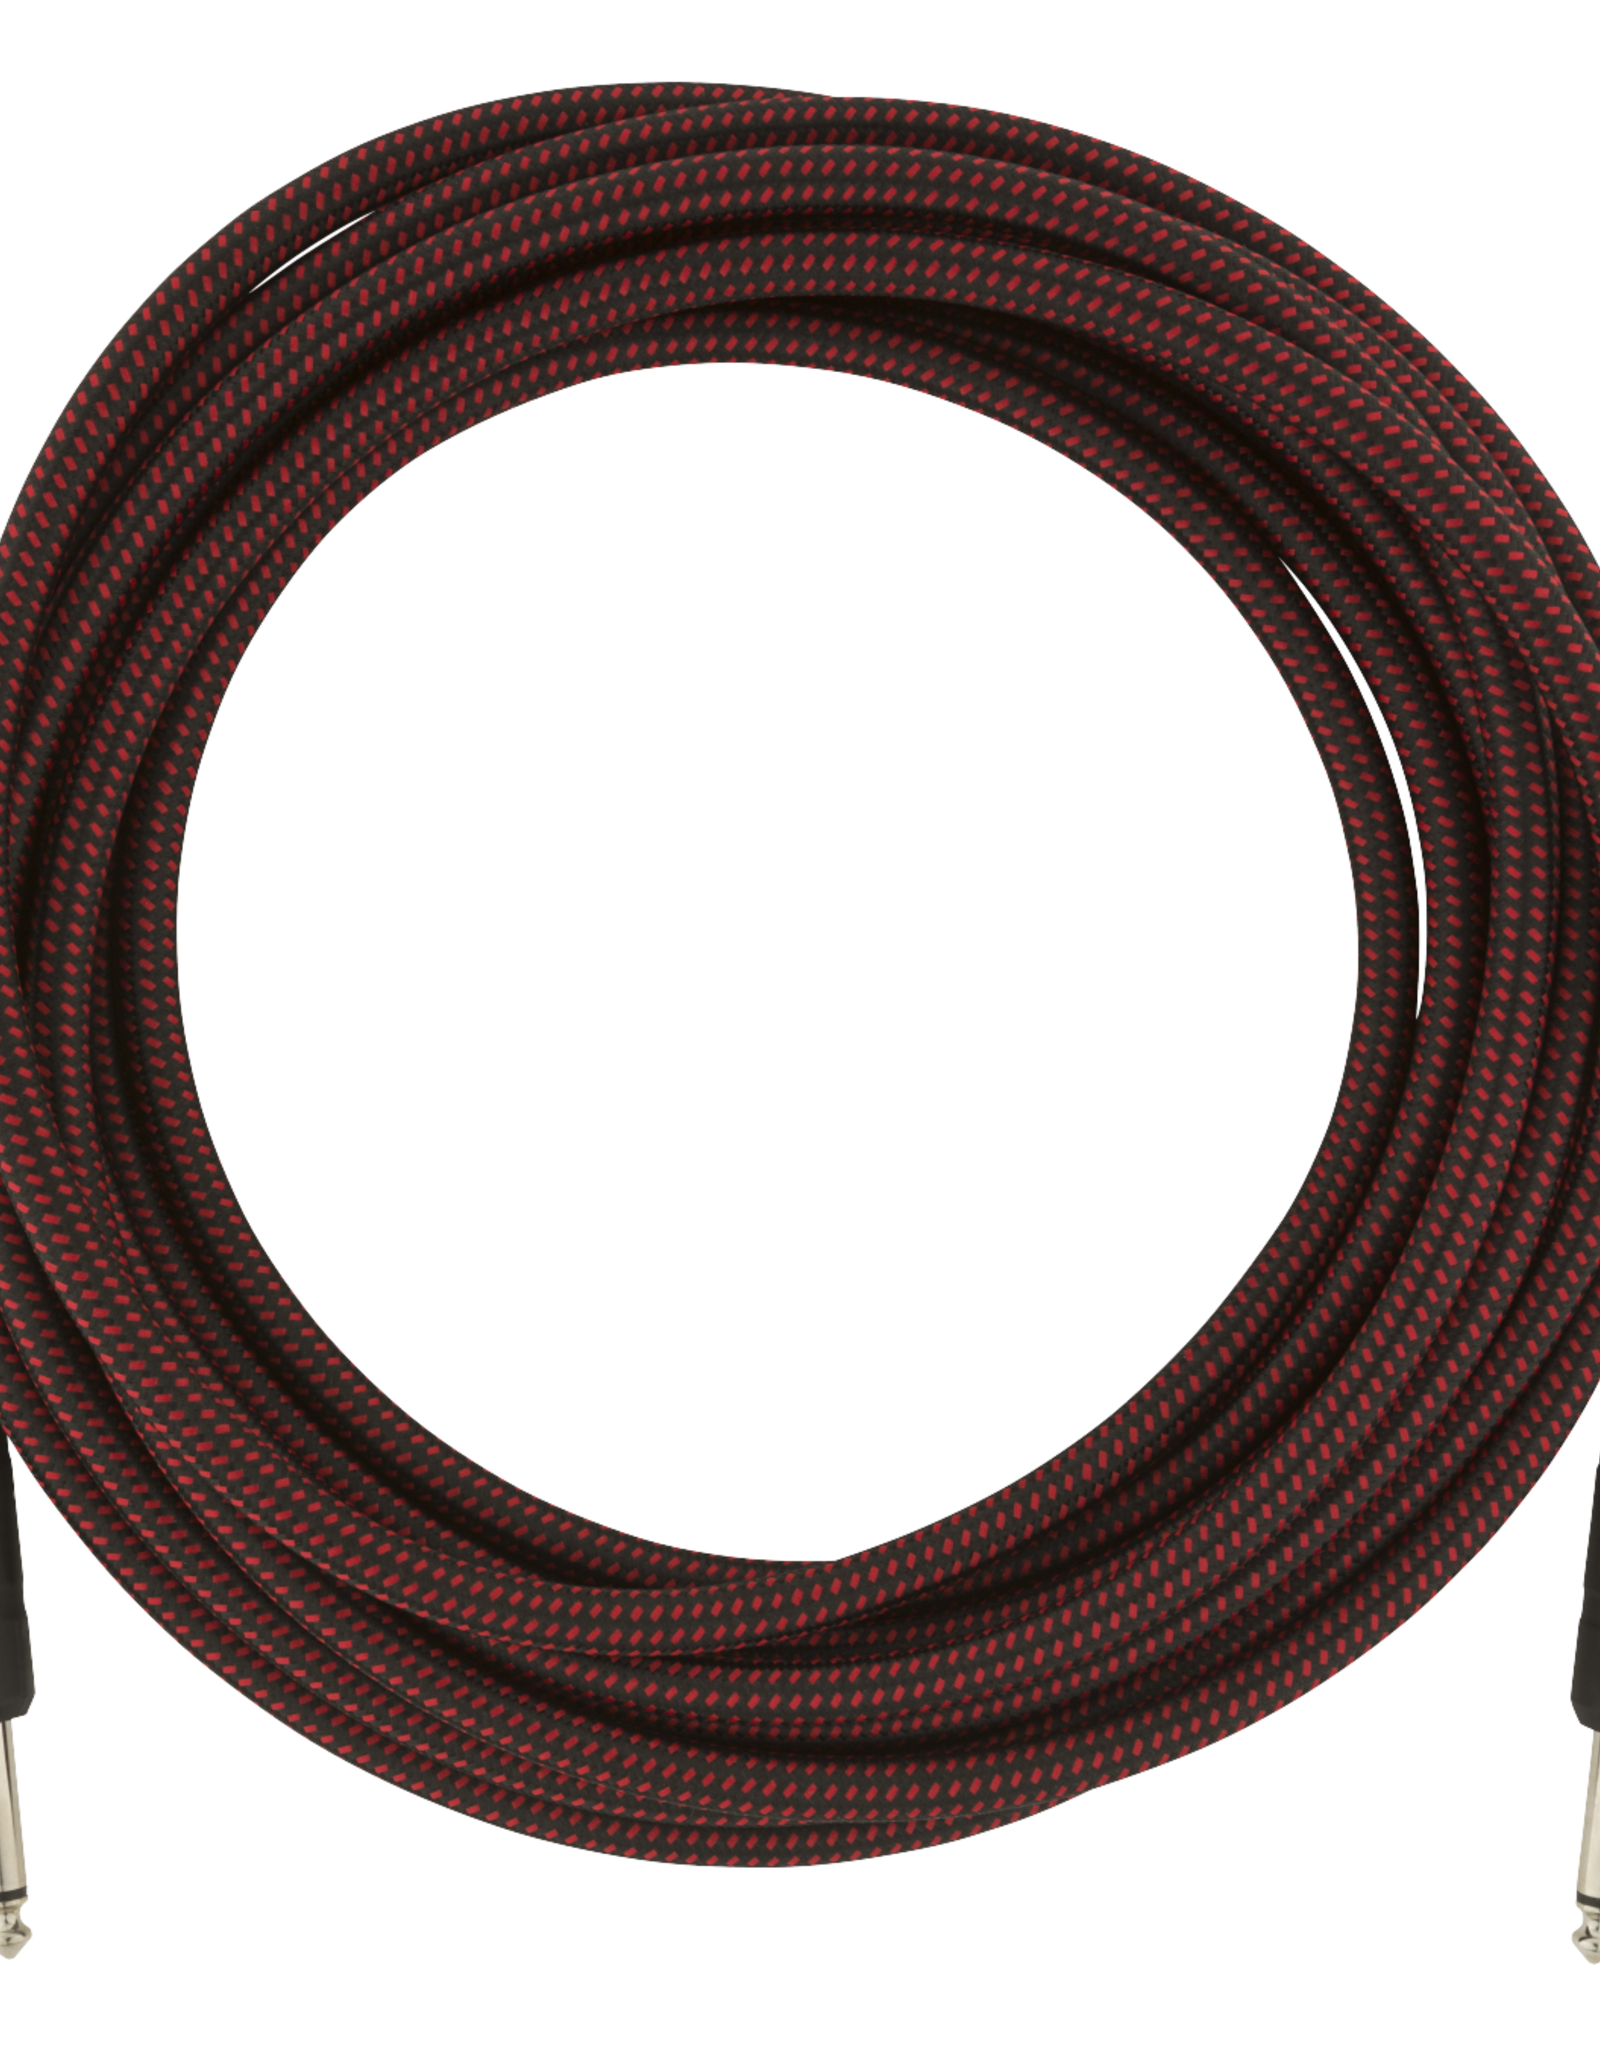 Fender Fender Pro Series Instrument Cable, 18.6', Red Tweed